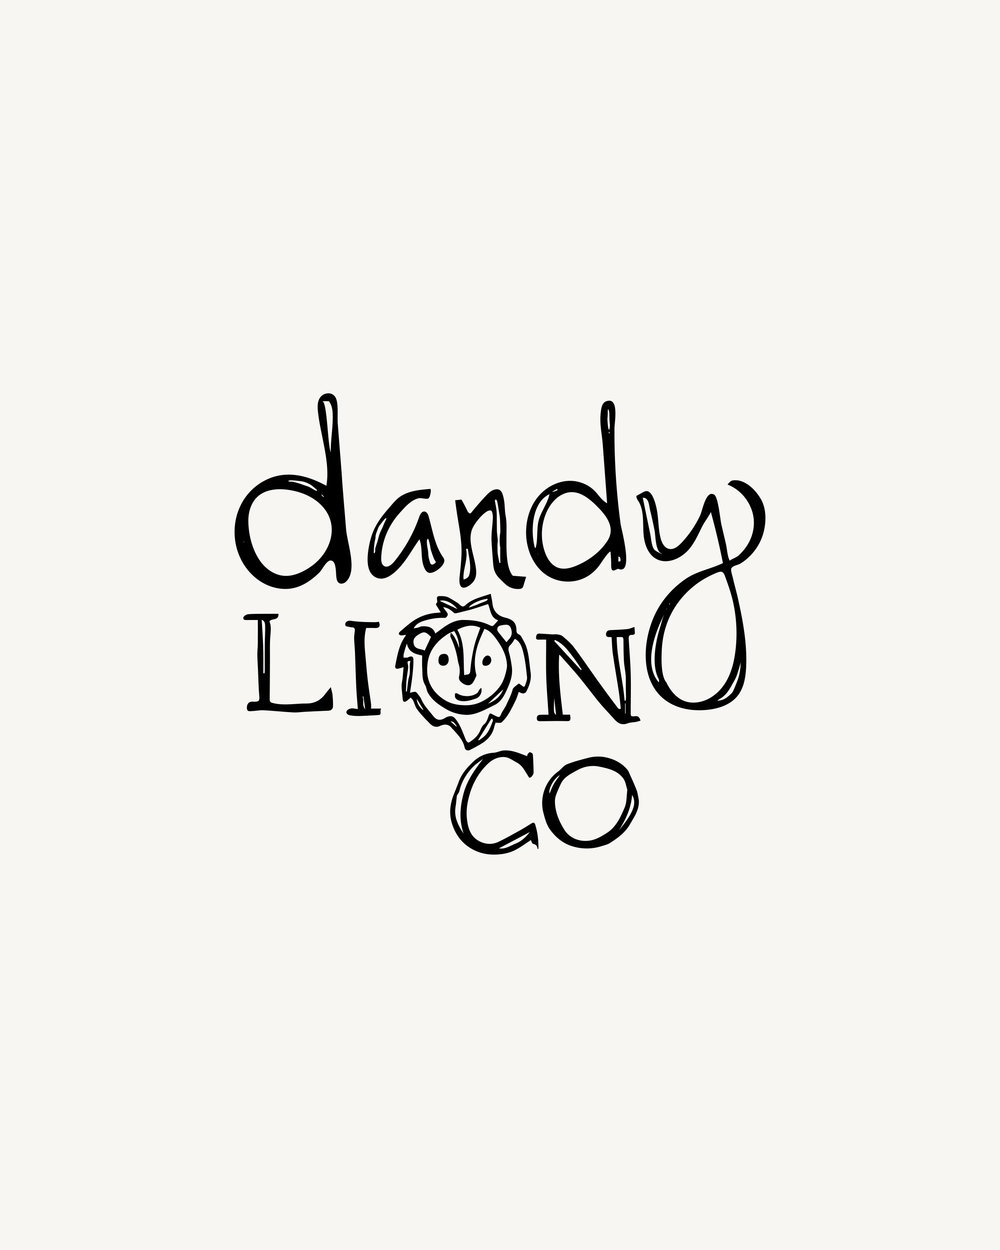 Dandy Lion Co by Britt Fabello